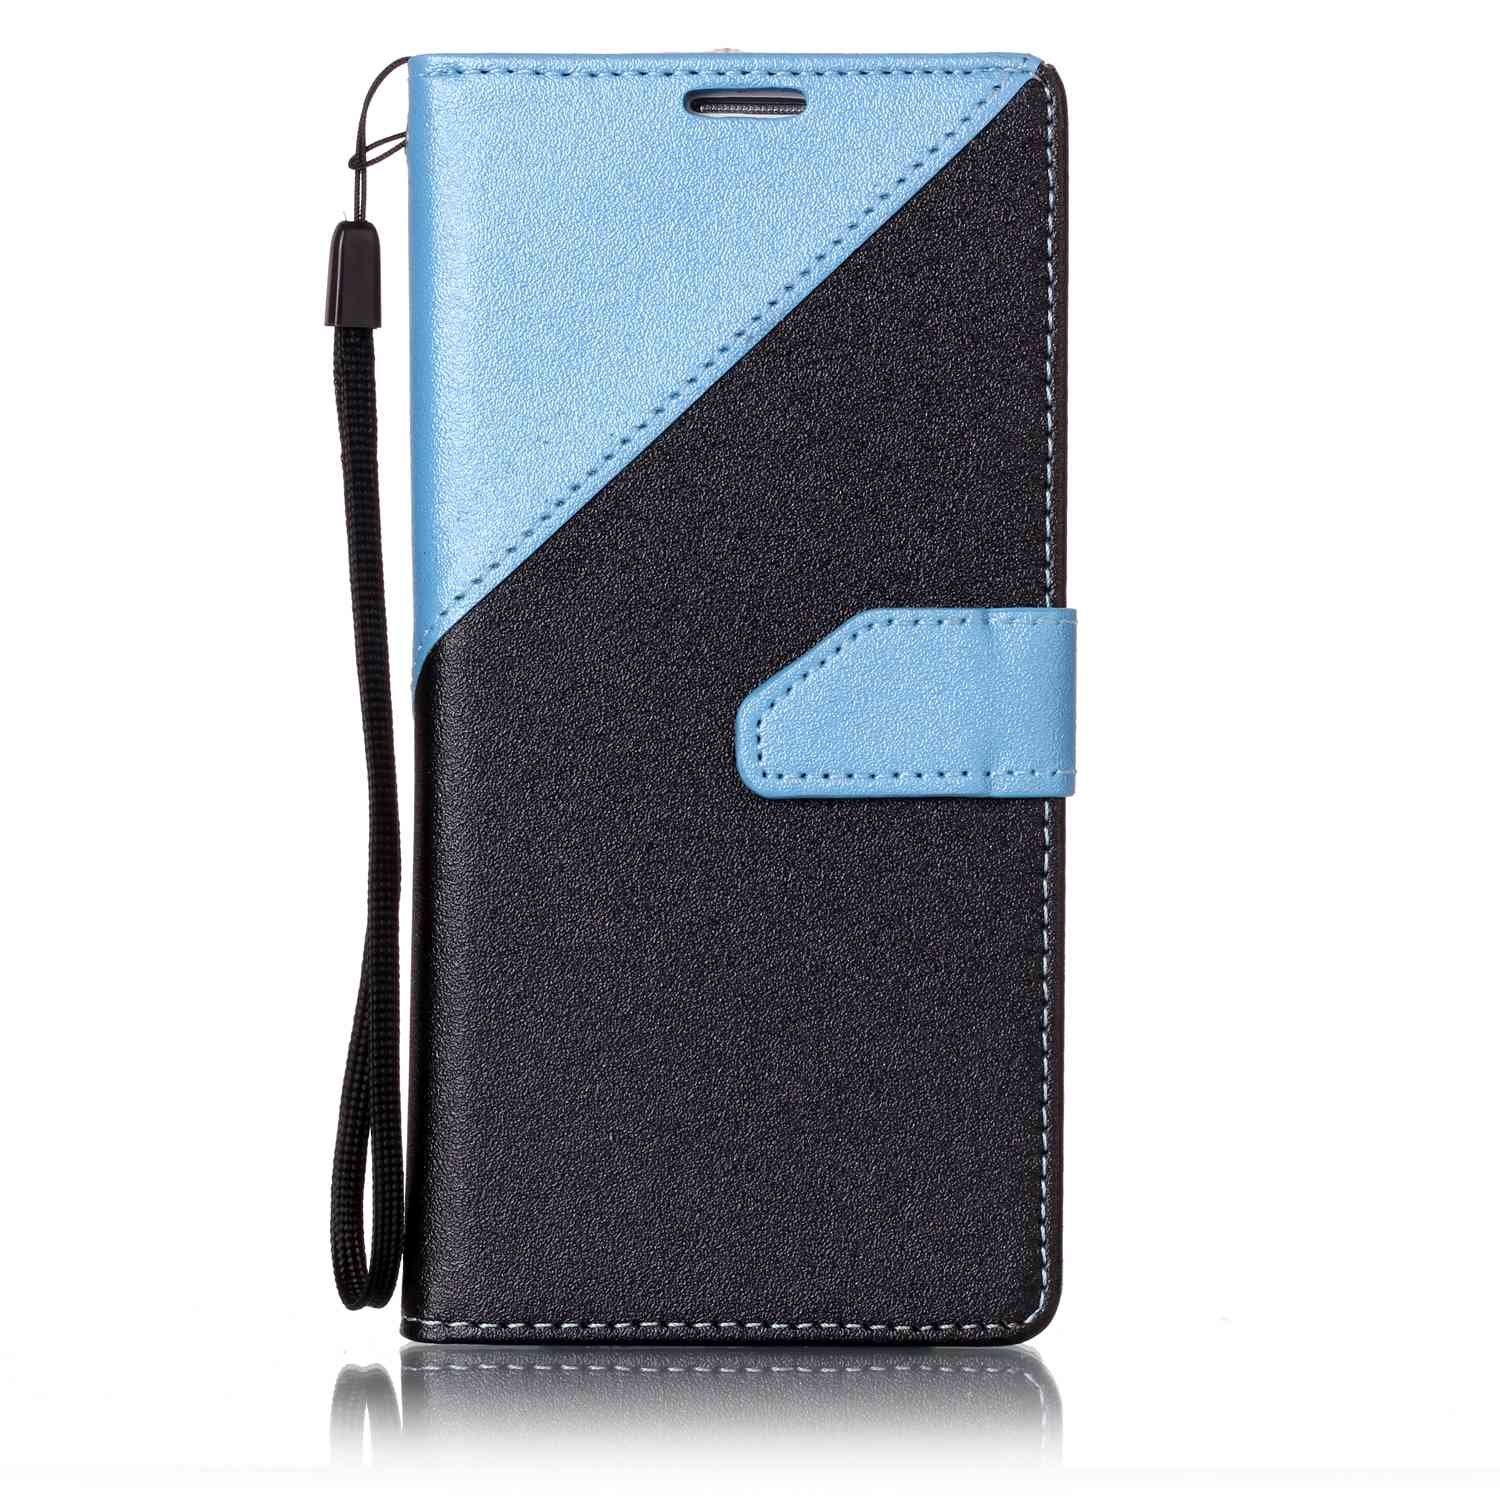 Coque Samsung Galaxy S7 Edge, Housse Etui Samsung Galaxy S7 Edge (5,5 Zoll), Carols Samsung Galaxy S7 Edge (5,5 Zoll) Étui Housse Portefeuille en Cuir Couture Mat PU Leather Flip Folio Case Cover Coque pour Samsung Galaxy S7 Edge (5,5 Zoll) Wallet Pouch Pr